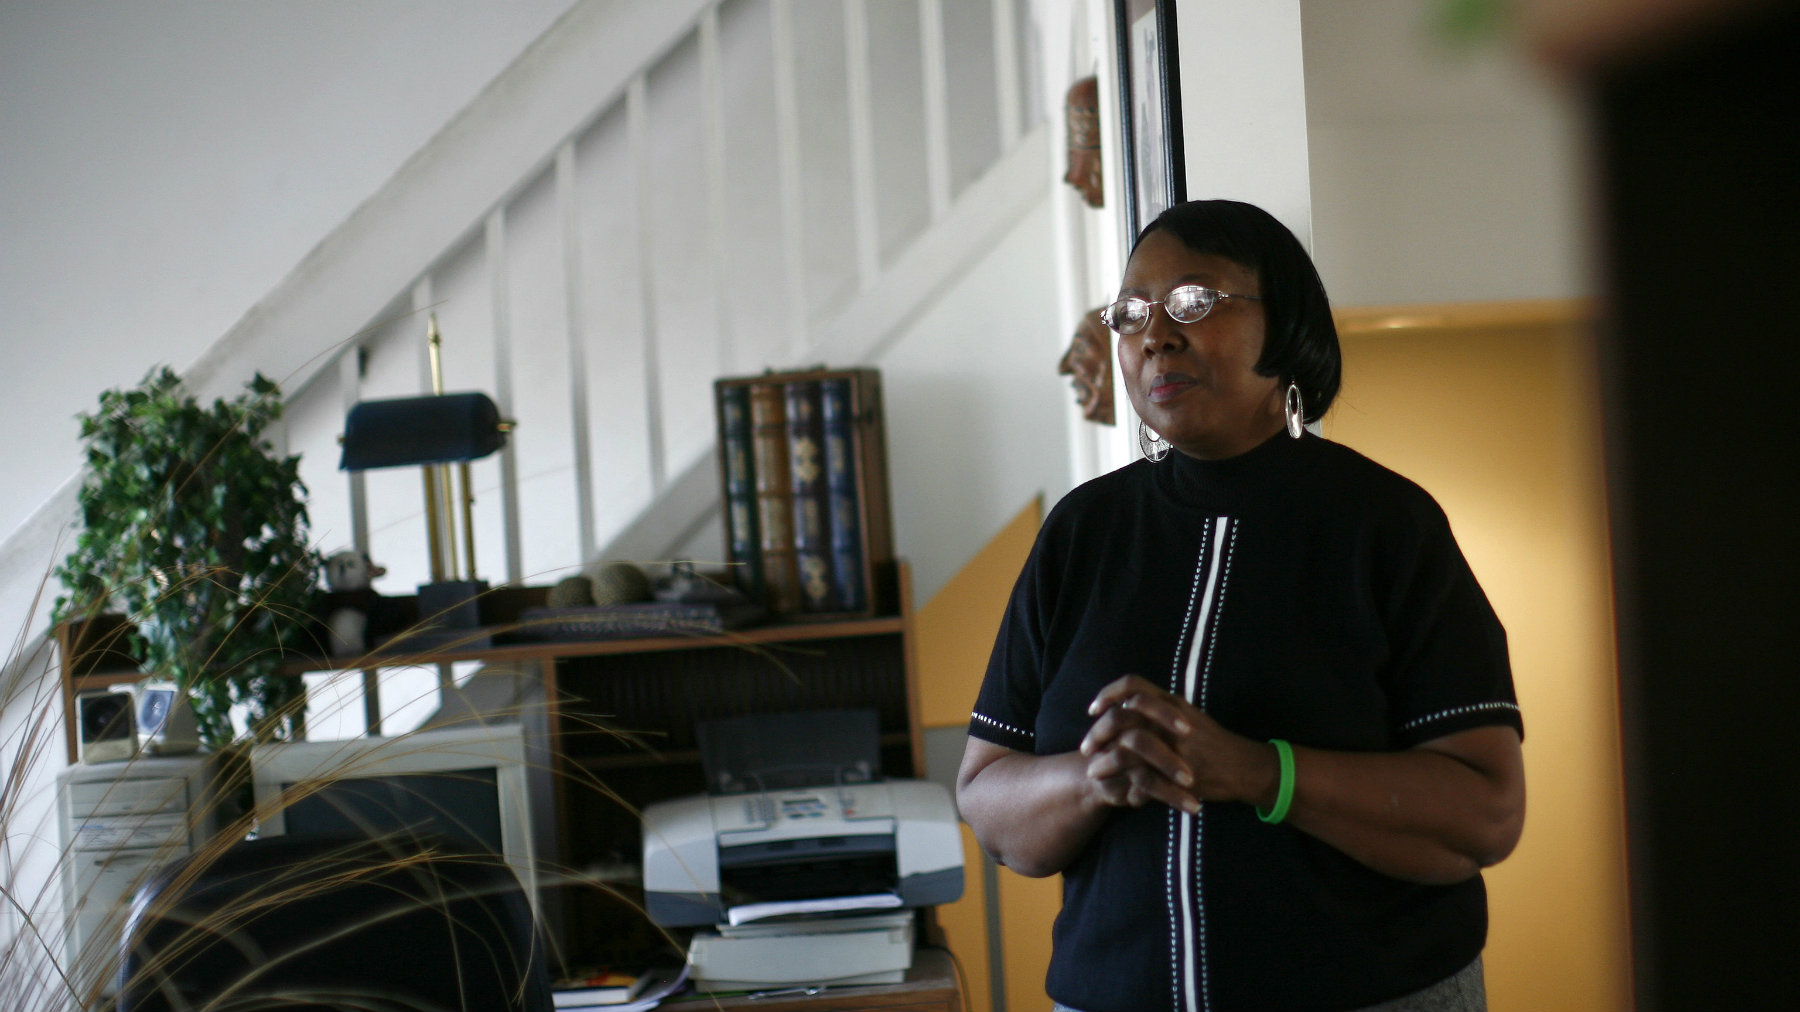 Lorene Parker stands at her house, which is in foreclosure, in Detroit December 11, 2008. Parker fell behind on her mortgage with Bank of America when she had large medical bills from heart and liver double transplant. Parker's home is in foreclosure and scheduled for sheriff sale on Thursday in court. REUTERS/Carlos Barria (UNITED STATES)